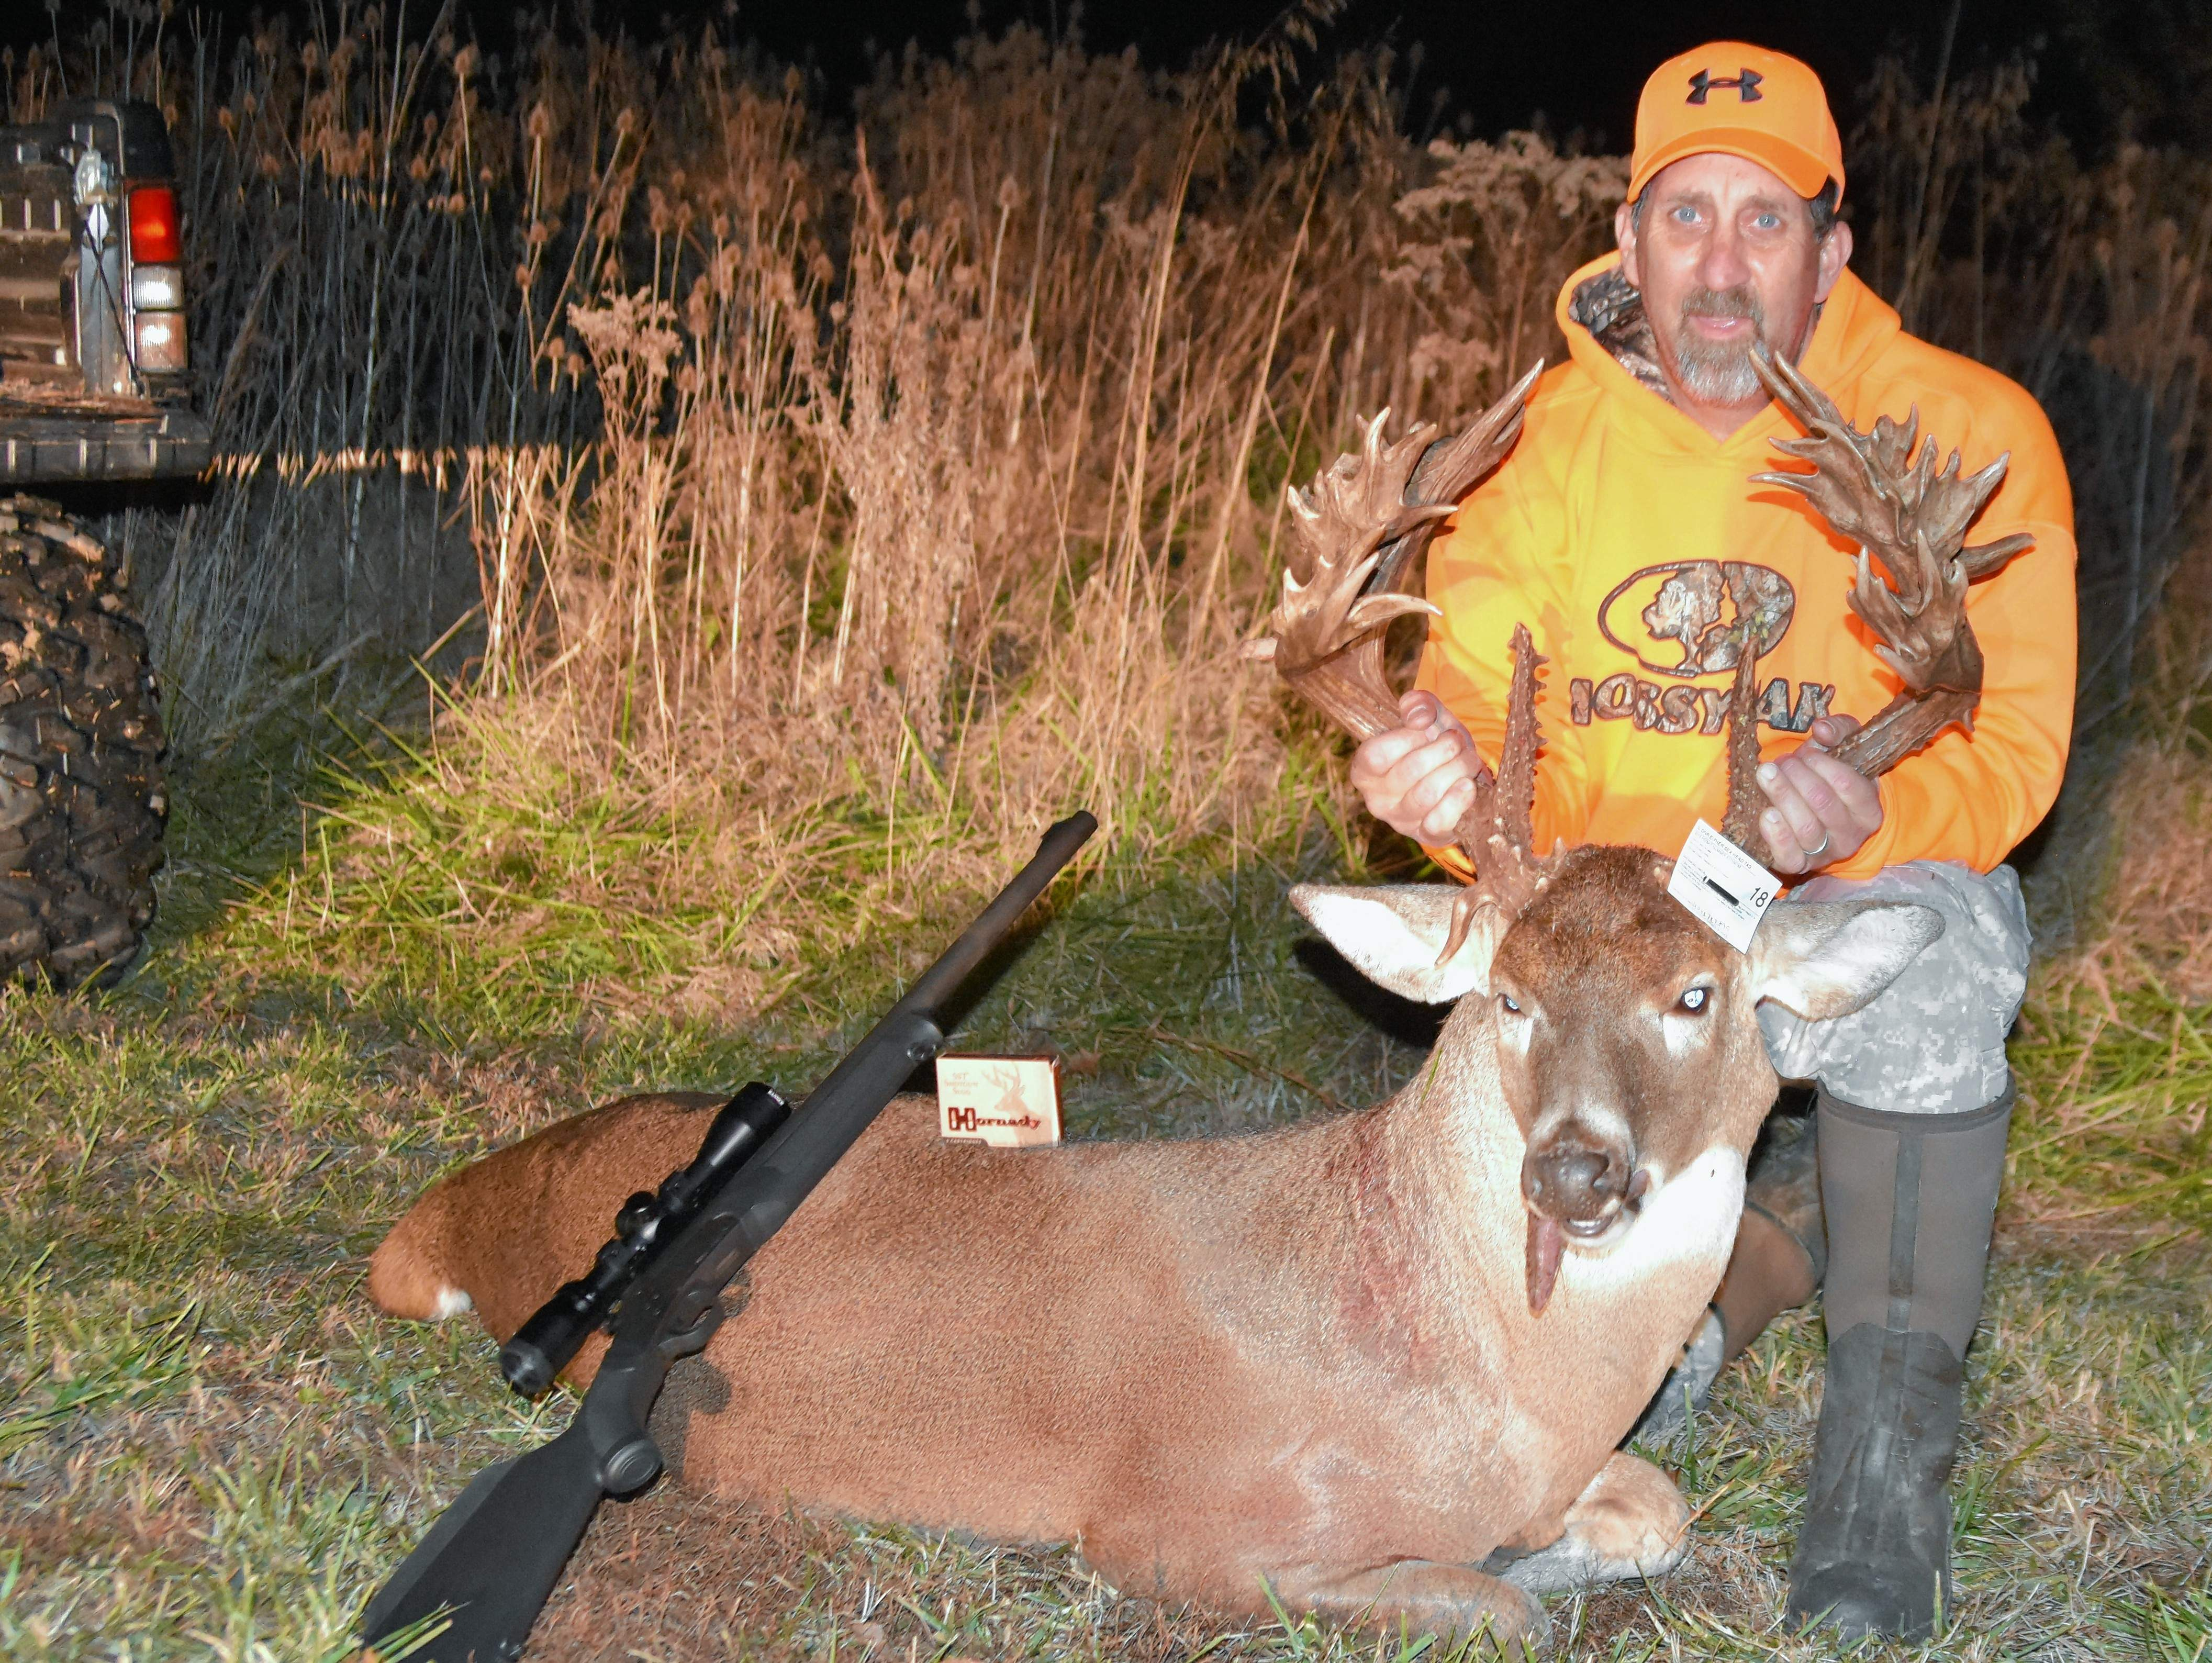 Keith Szablewski poses with his 'buck of a lifetime' he shot in rural Marion on Saturday. The deer is estimated to be at least a 33-pointer weighing around 275 pounds.